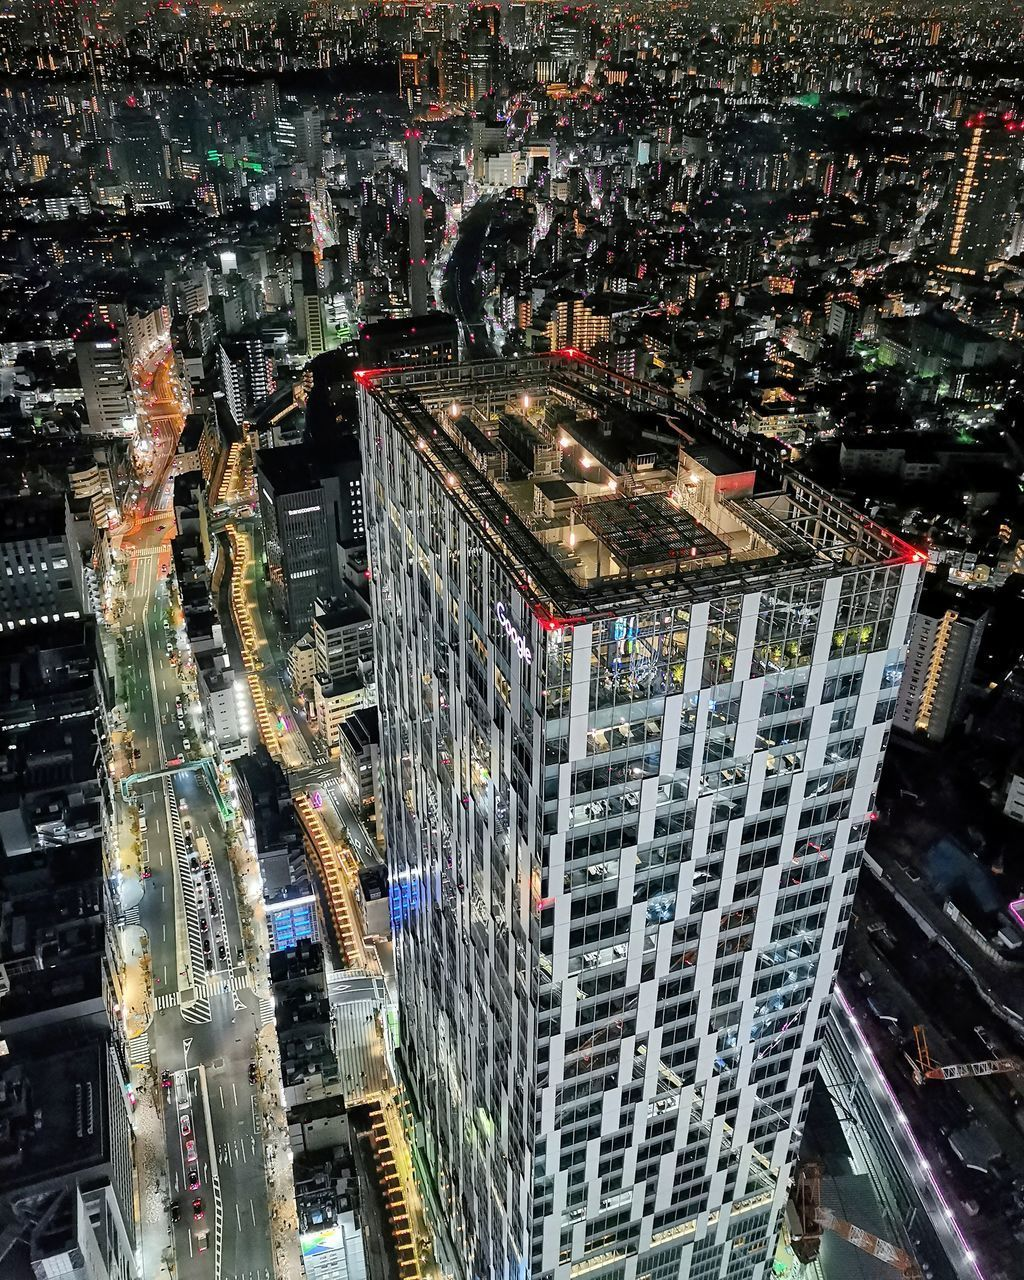 AERIAL VIEW OF ILLUMINATED CITY BUILDINGS